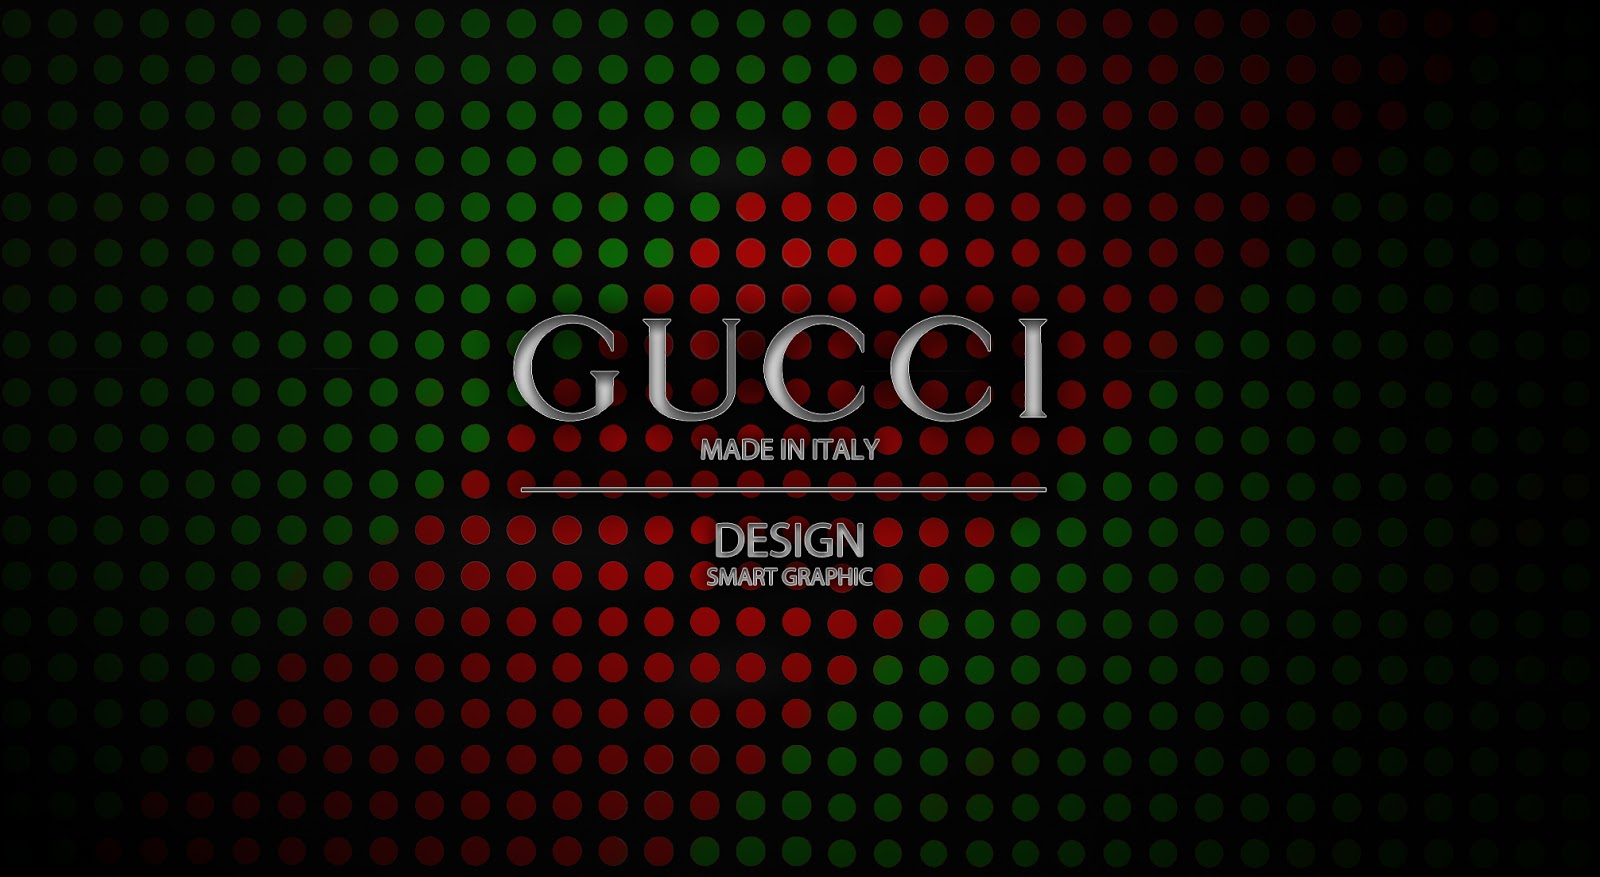 Gucci Wallpaper Hd Gucci   wallpaper 1600x877